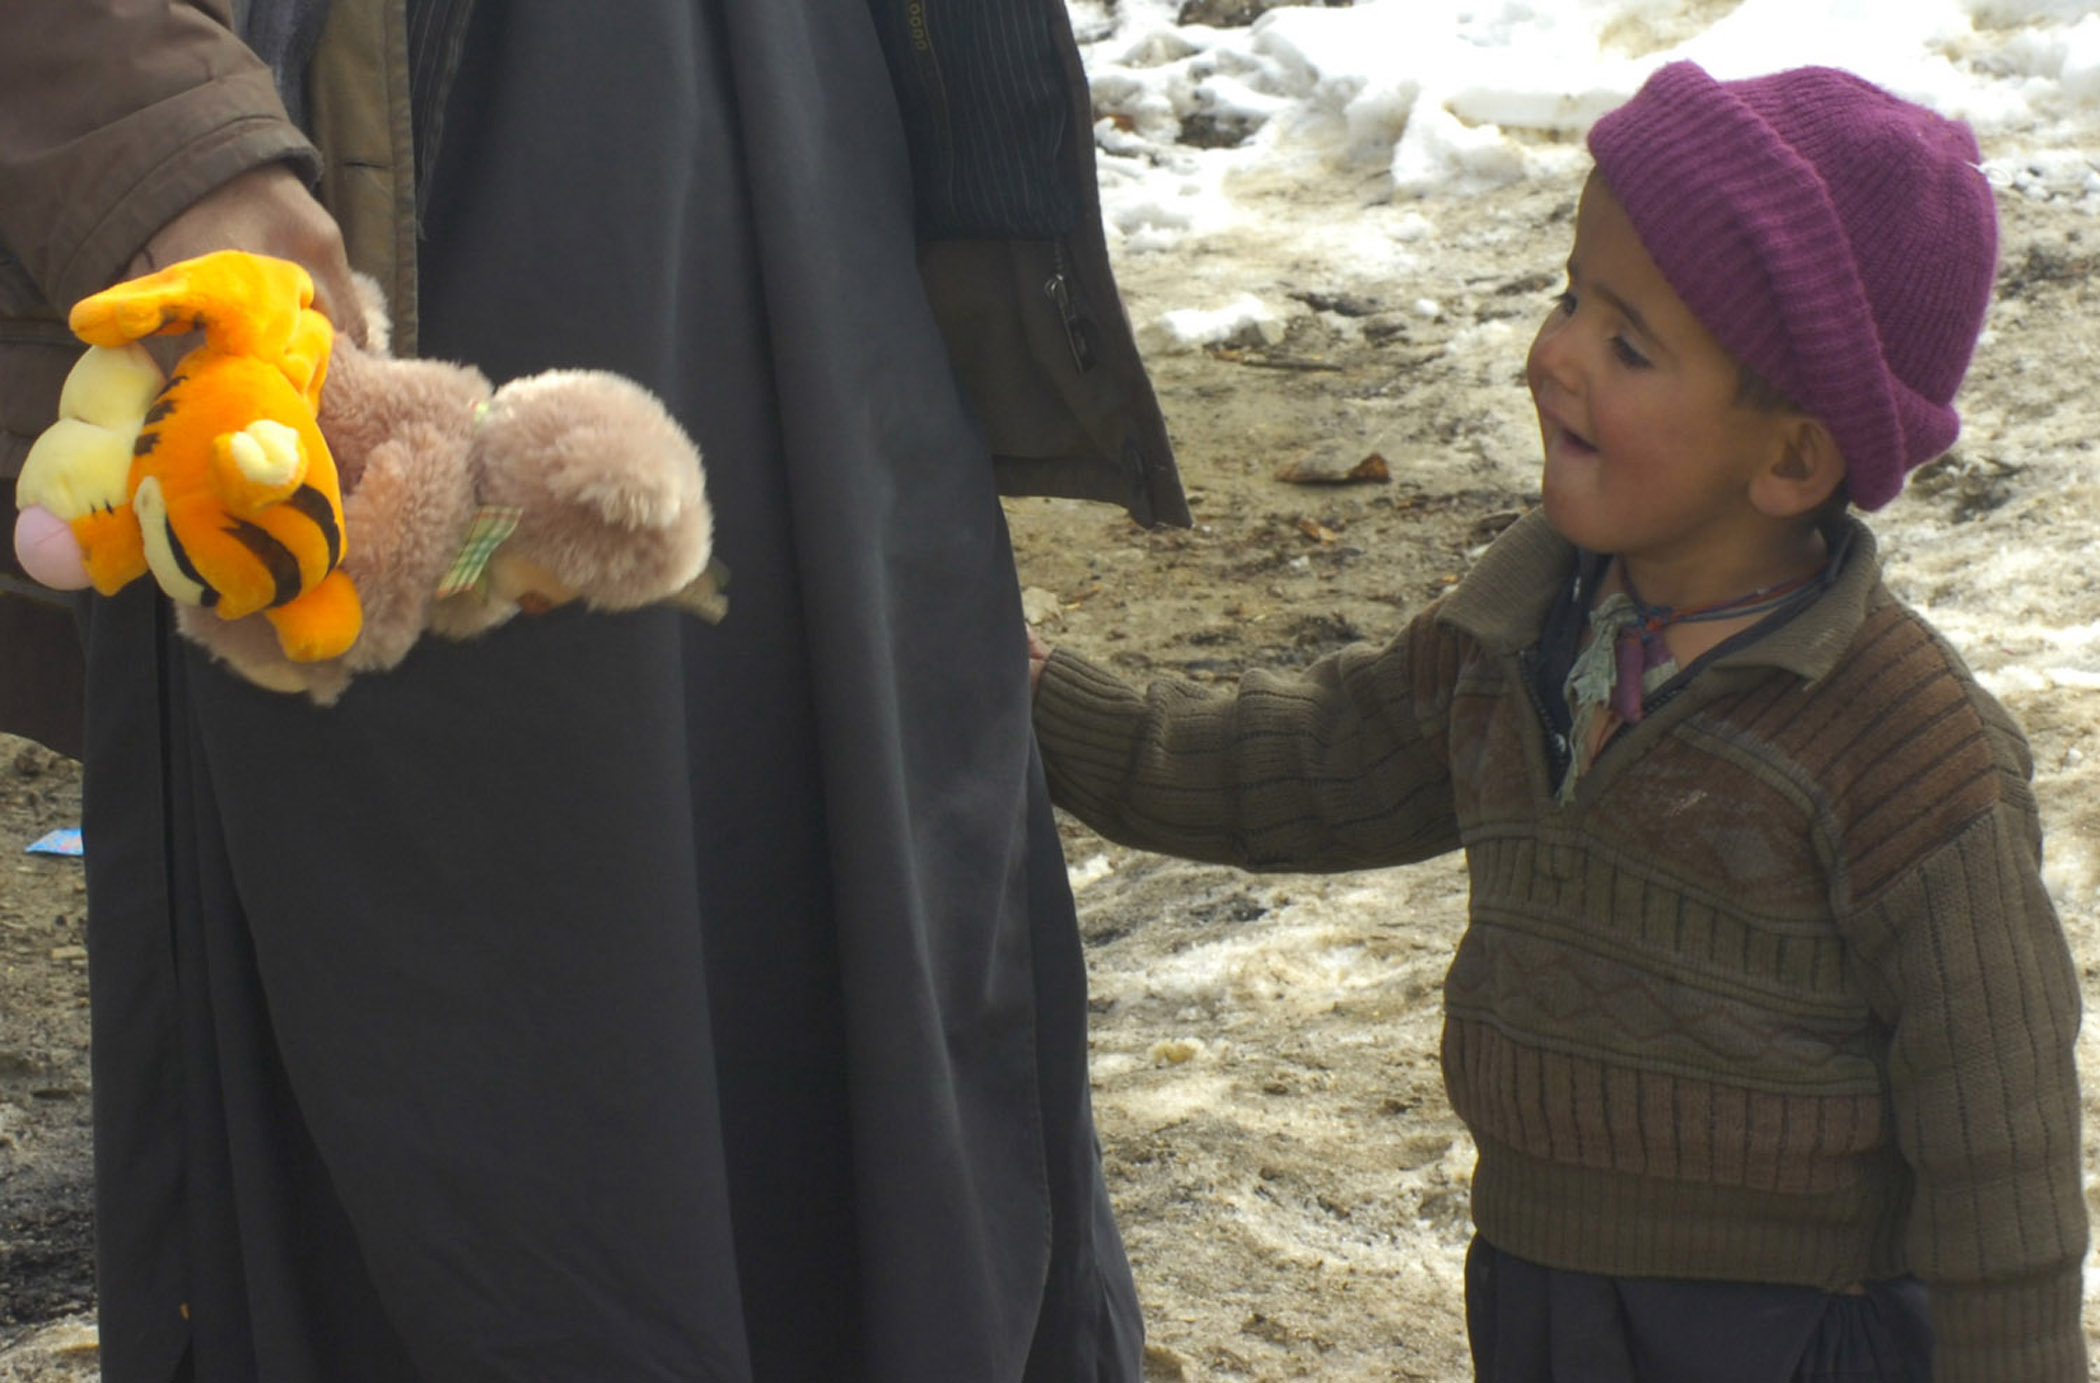 File:Ghazni PRT brings medical care and winter clothes to ...